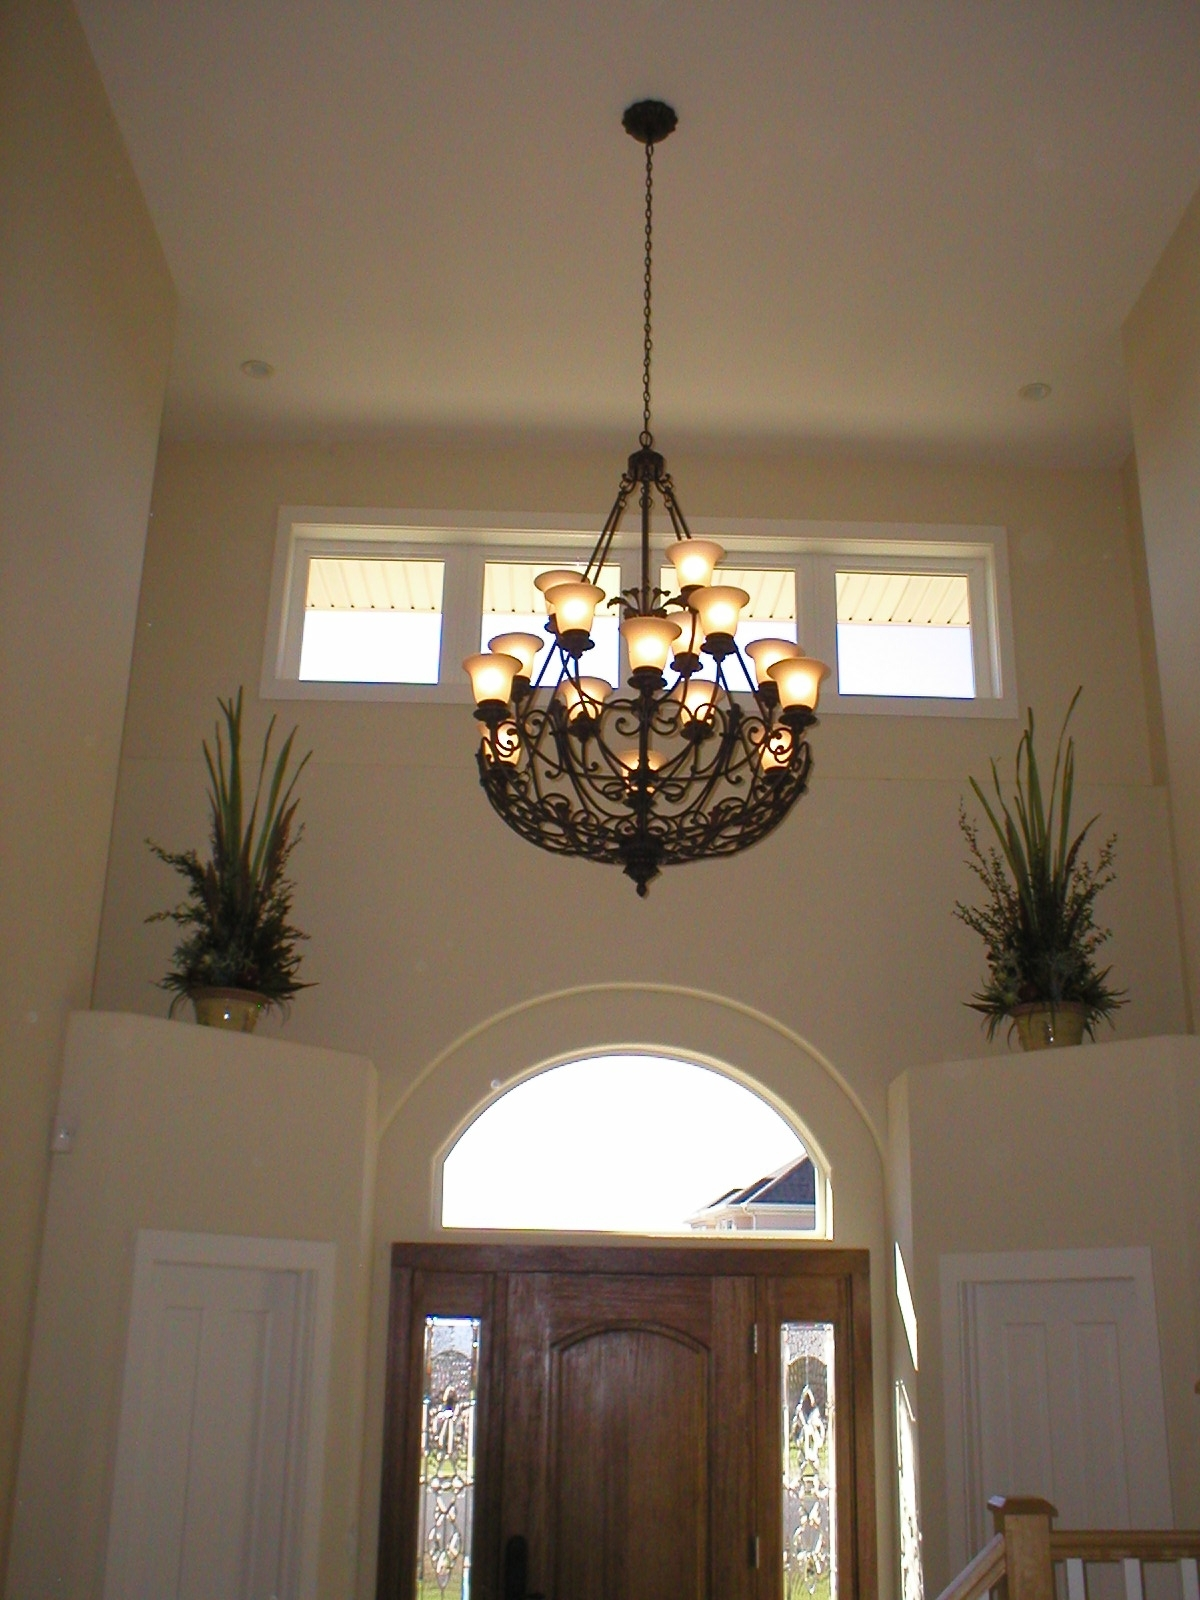 Hallway Chandeliers In Most Up To Date Light : Modern Entryway Chandelier. Unique Foyer Lighting (View 11 of 20)